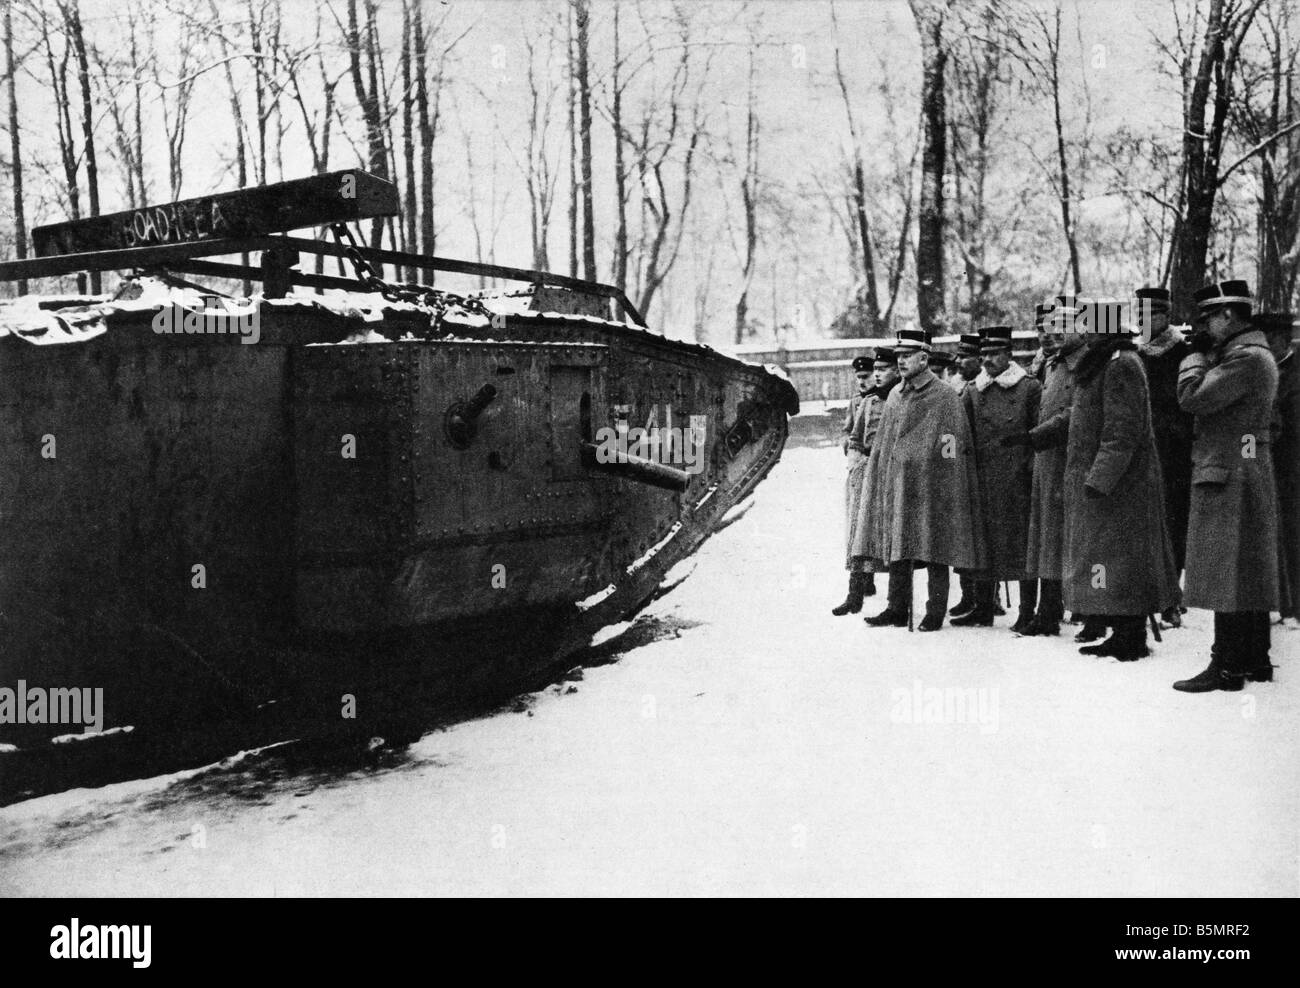 9 1917 11 20 A2 28 E WW1 Inspection captured English tank World War 1 1914 18 France Battle of Cambrai 20th 29th - Stock Image